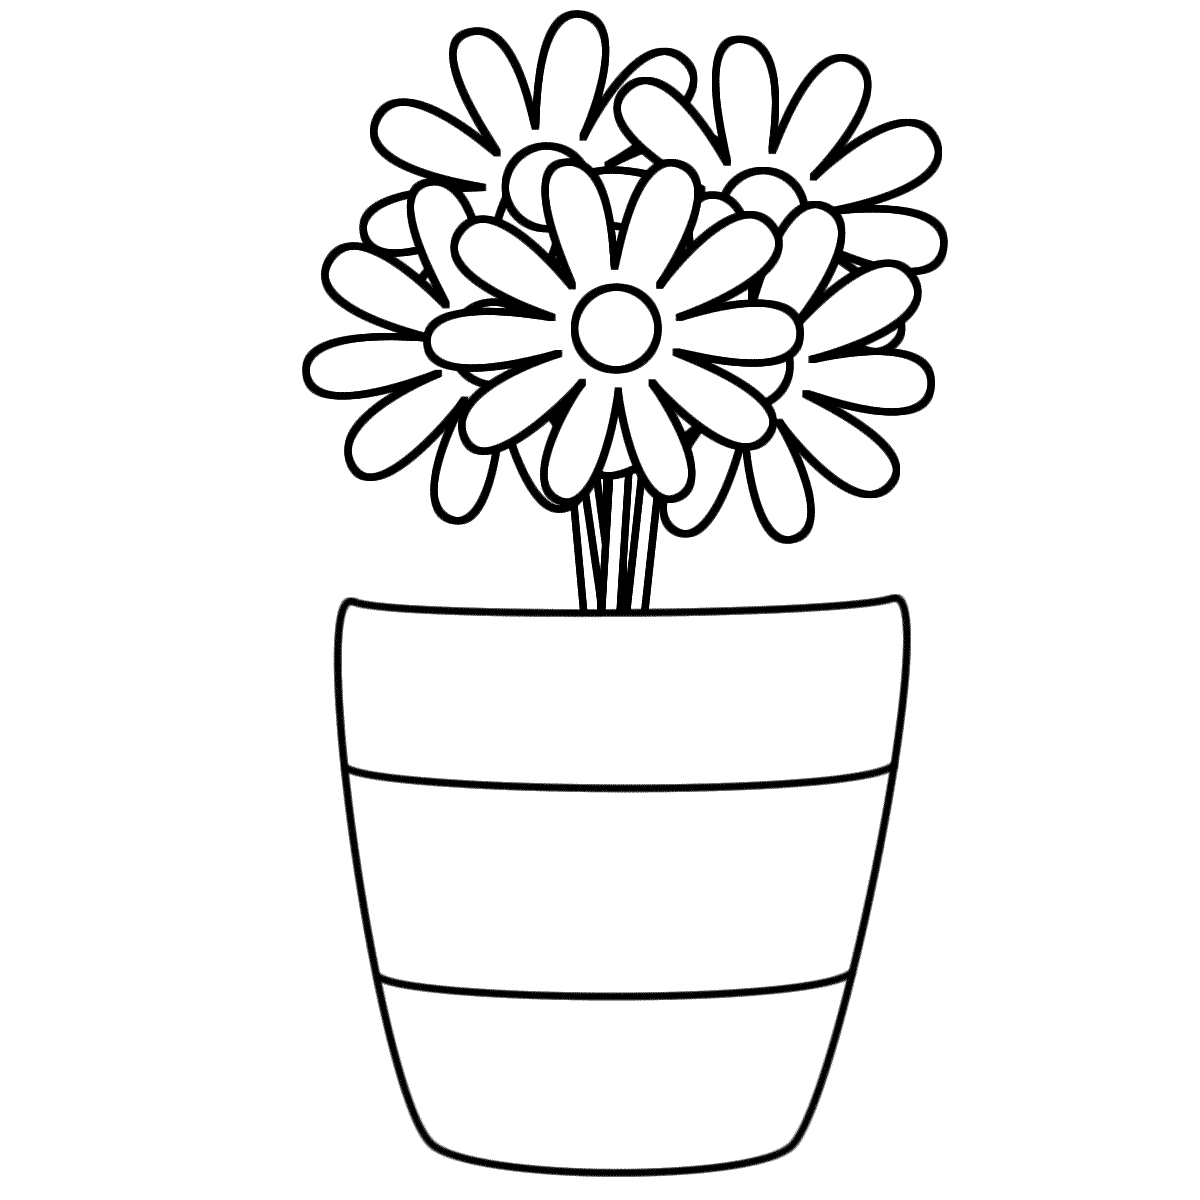 free printable mothers day coloring pages - vase and flower template blank